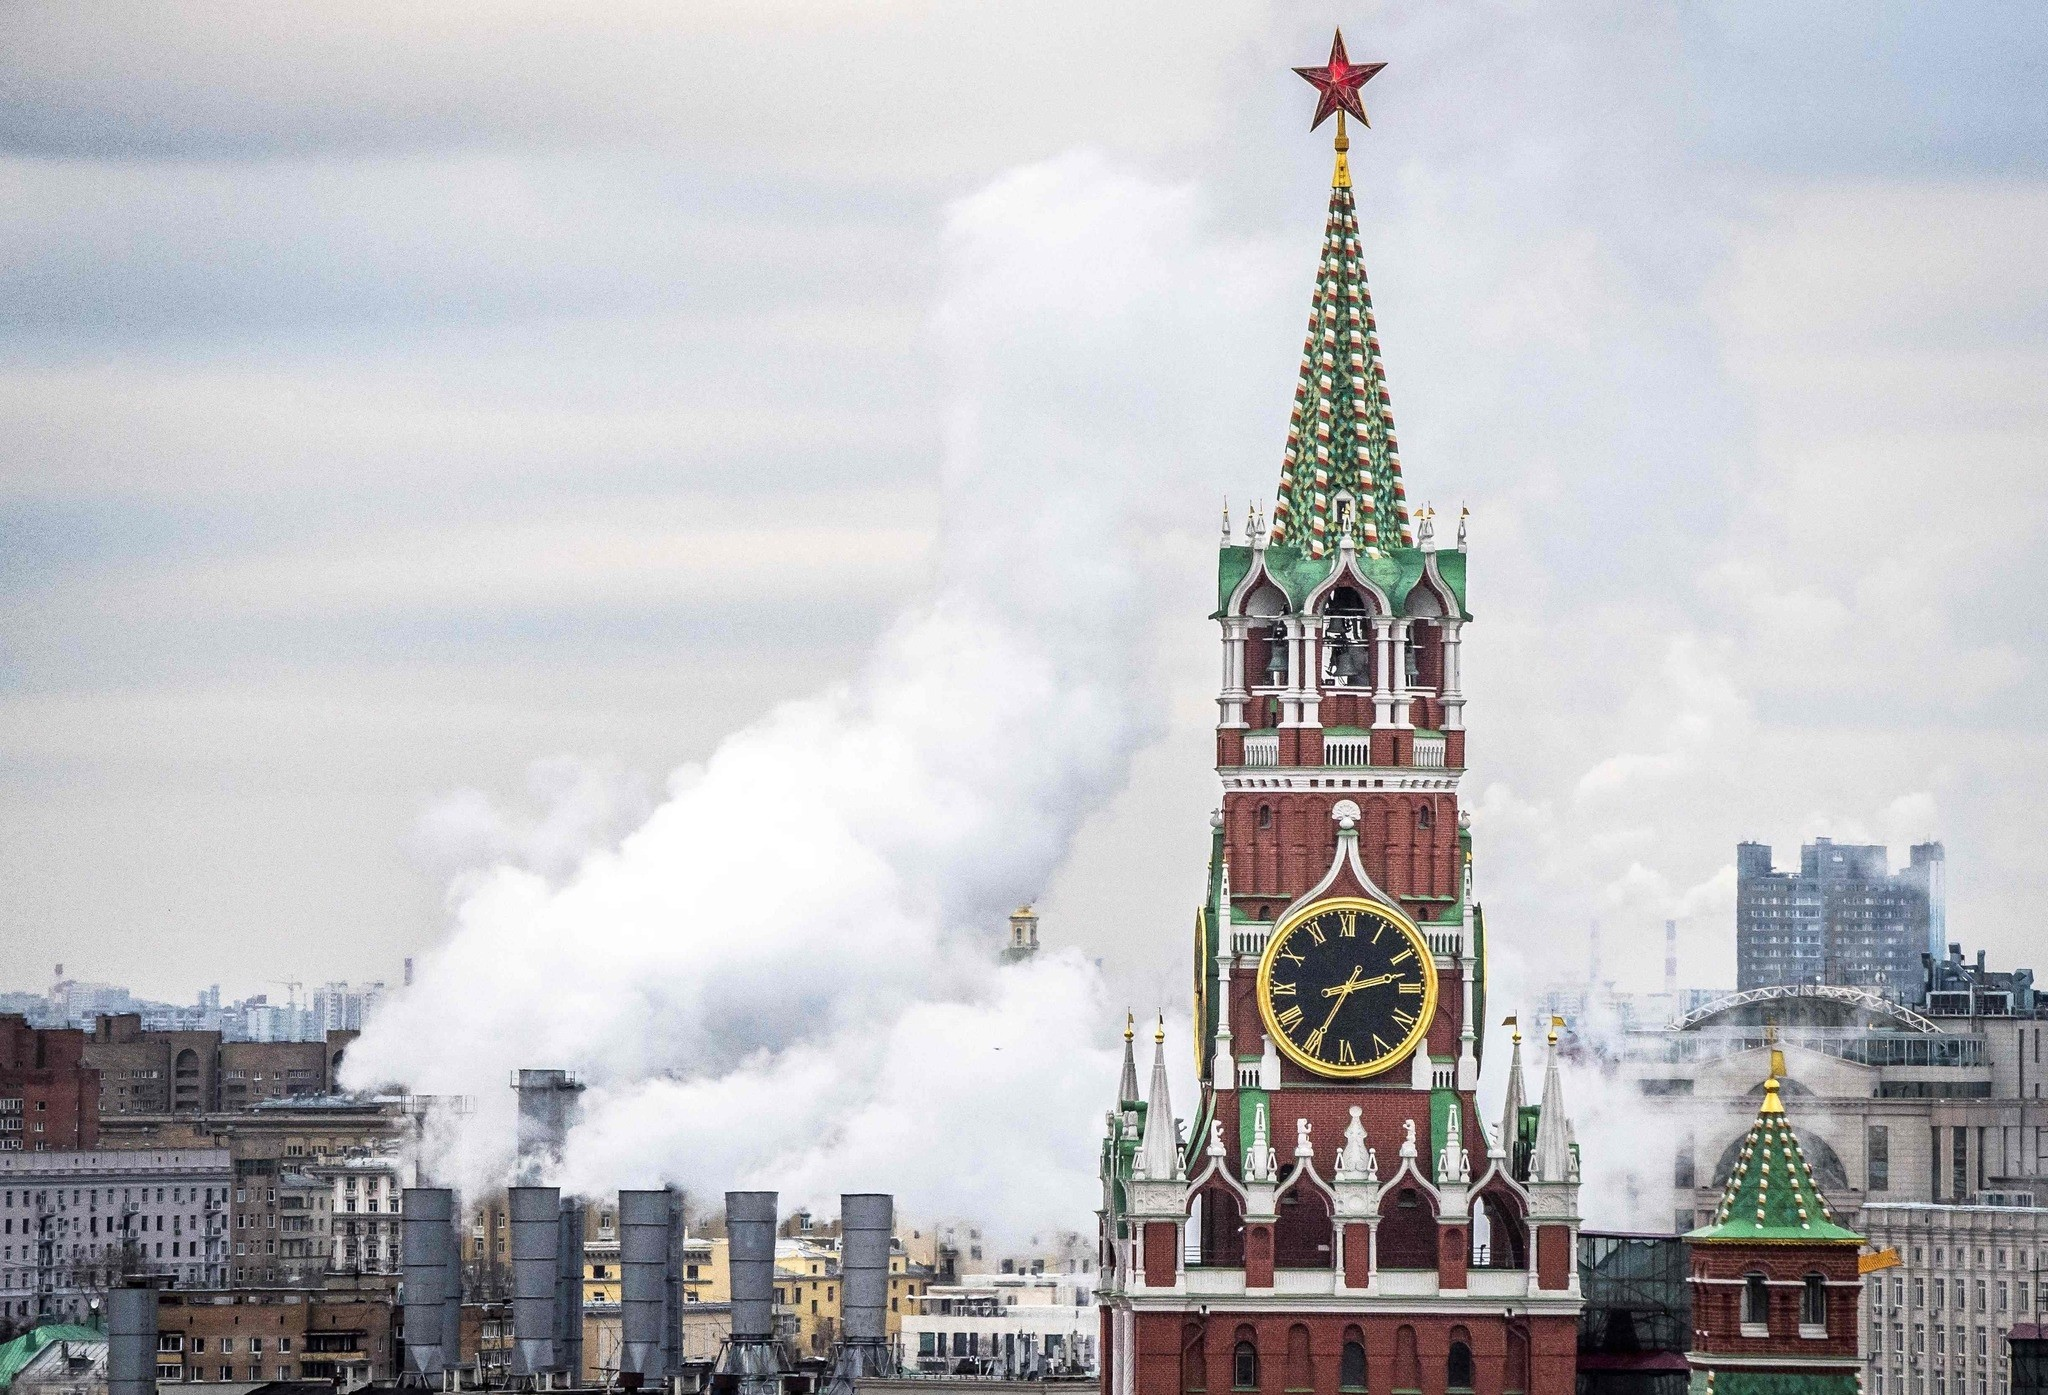 The Kremlinu2019s Spasskaya Tower and a heating power plant in Moscow.